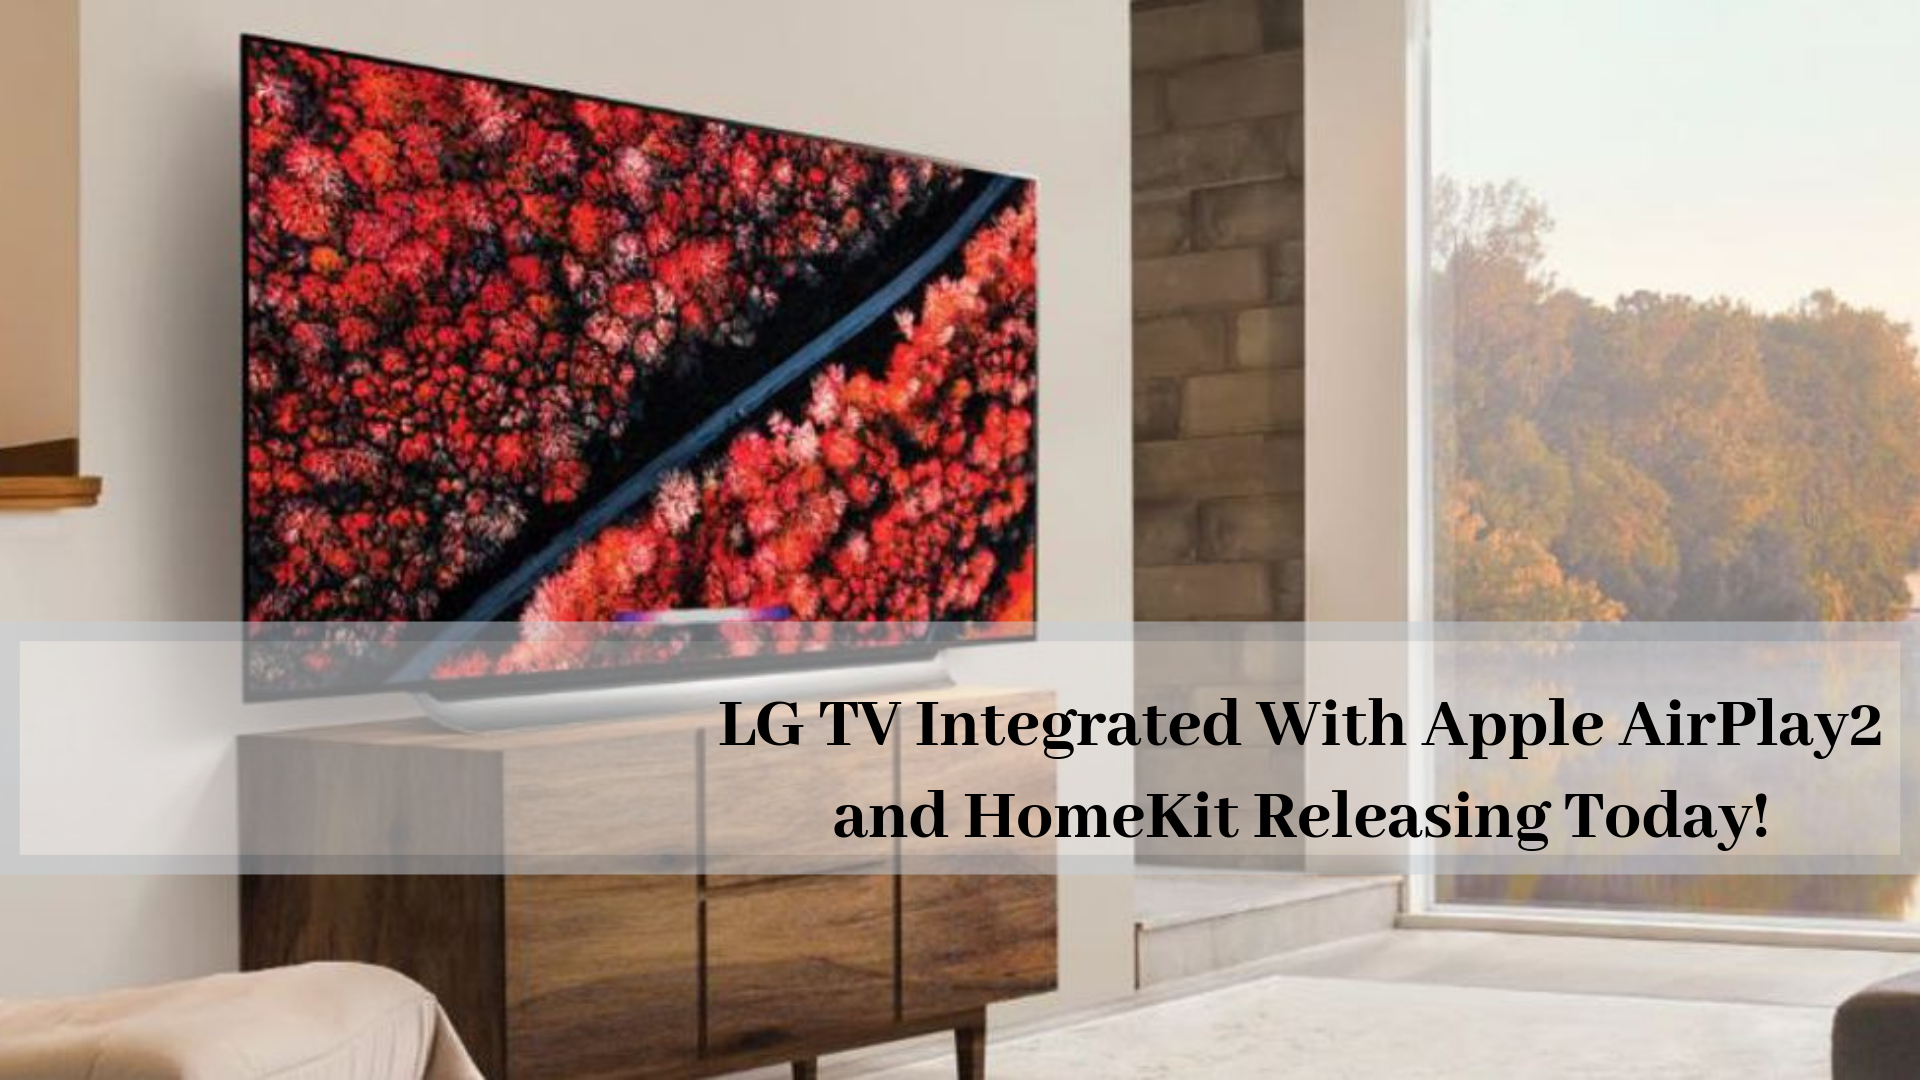 LG TV Integrated With Apple AirPlay2 and HomeKit Releasing Today!